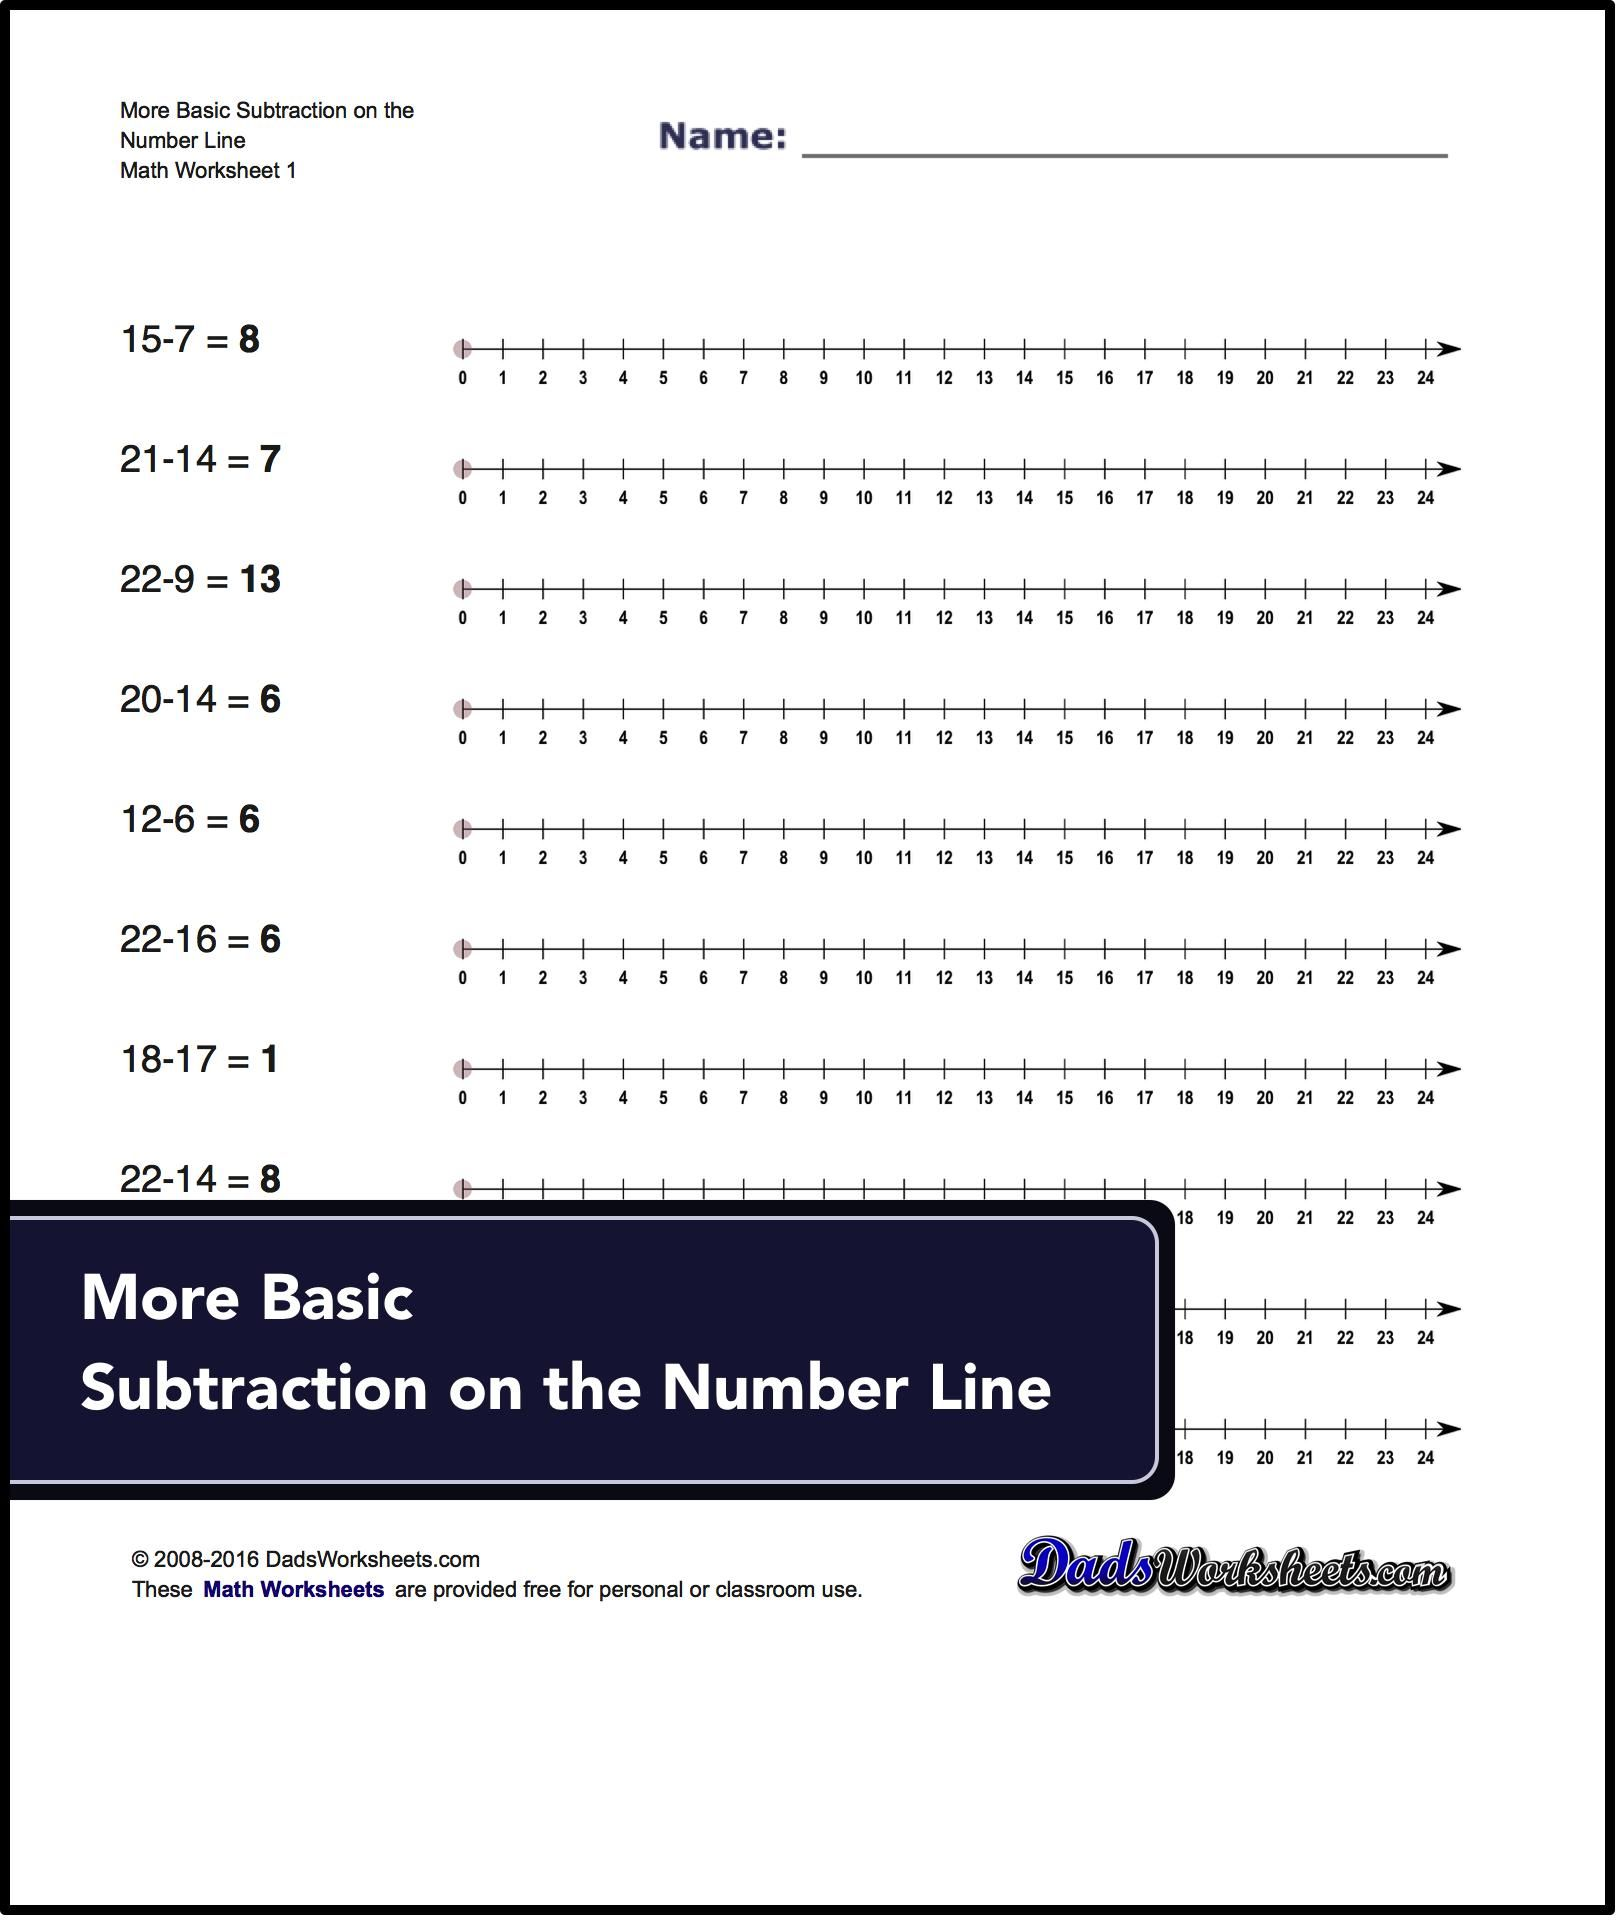 Subtraction Worksheets For More Basic Subtraction On The